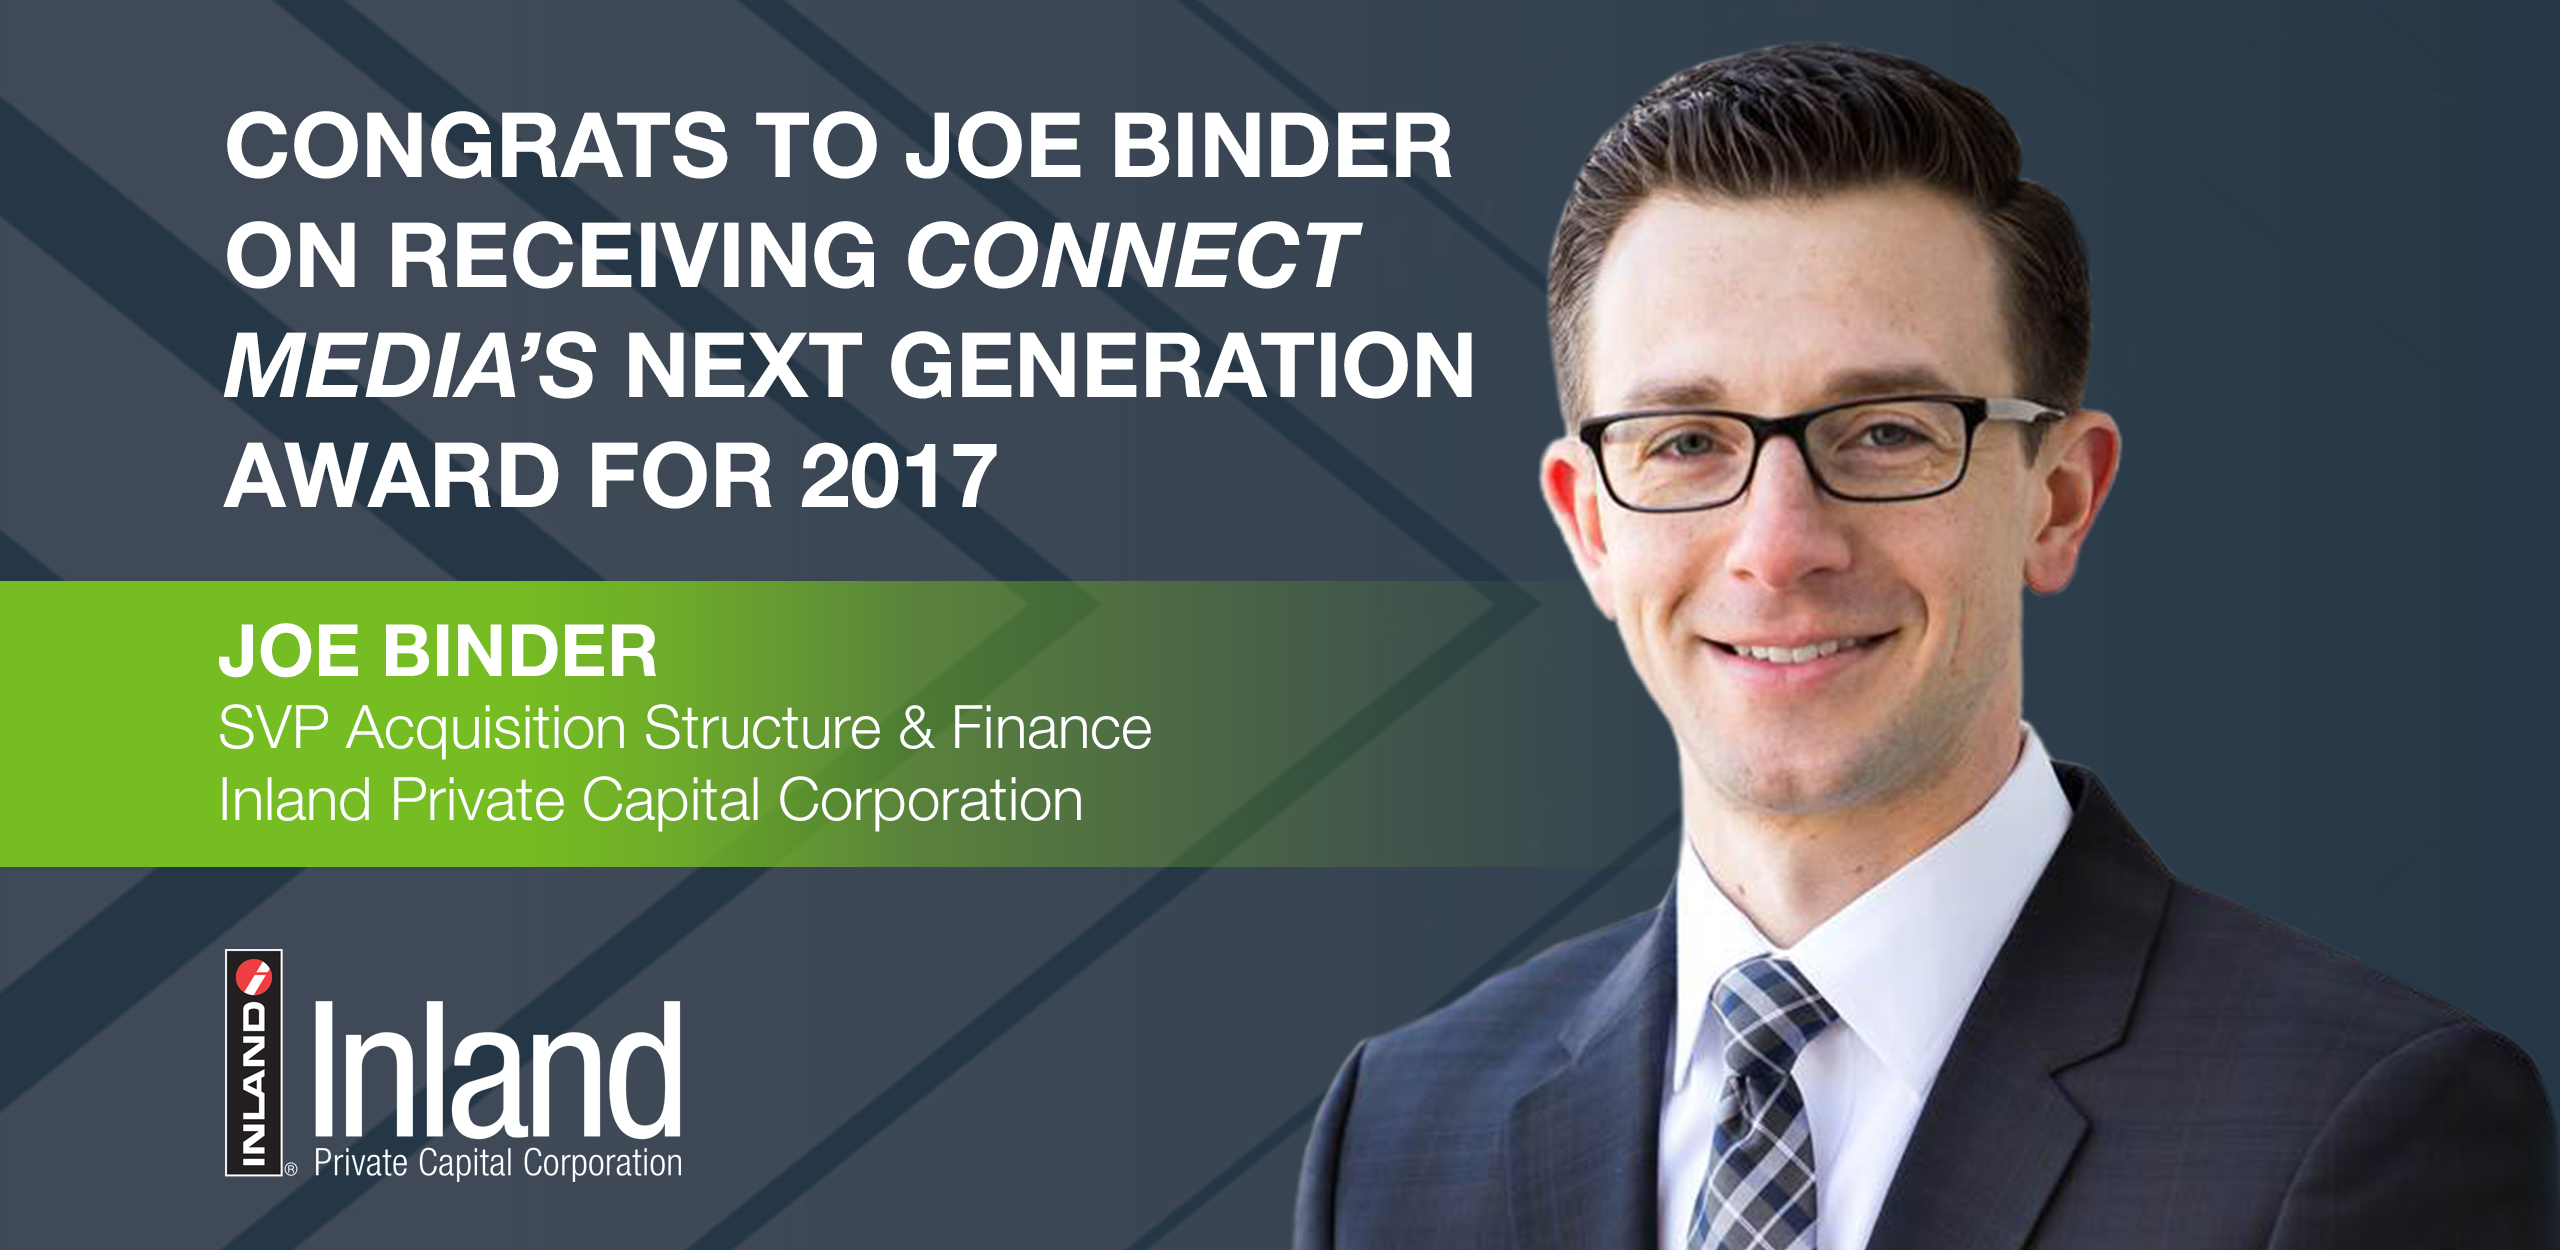 Joe Binder Next Generation Award